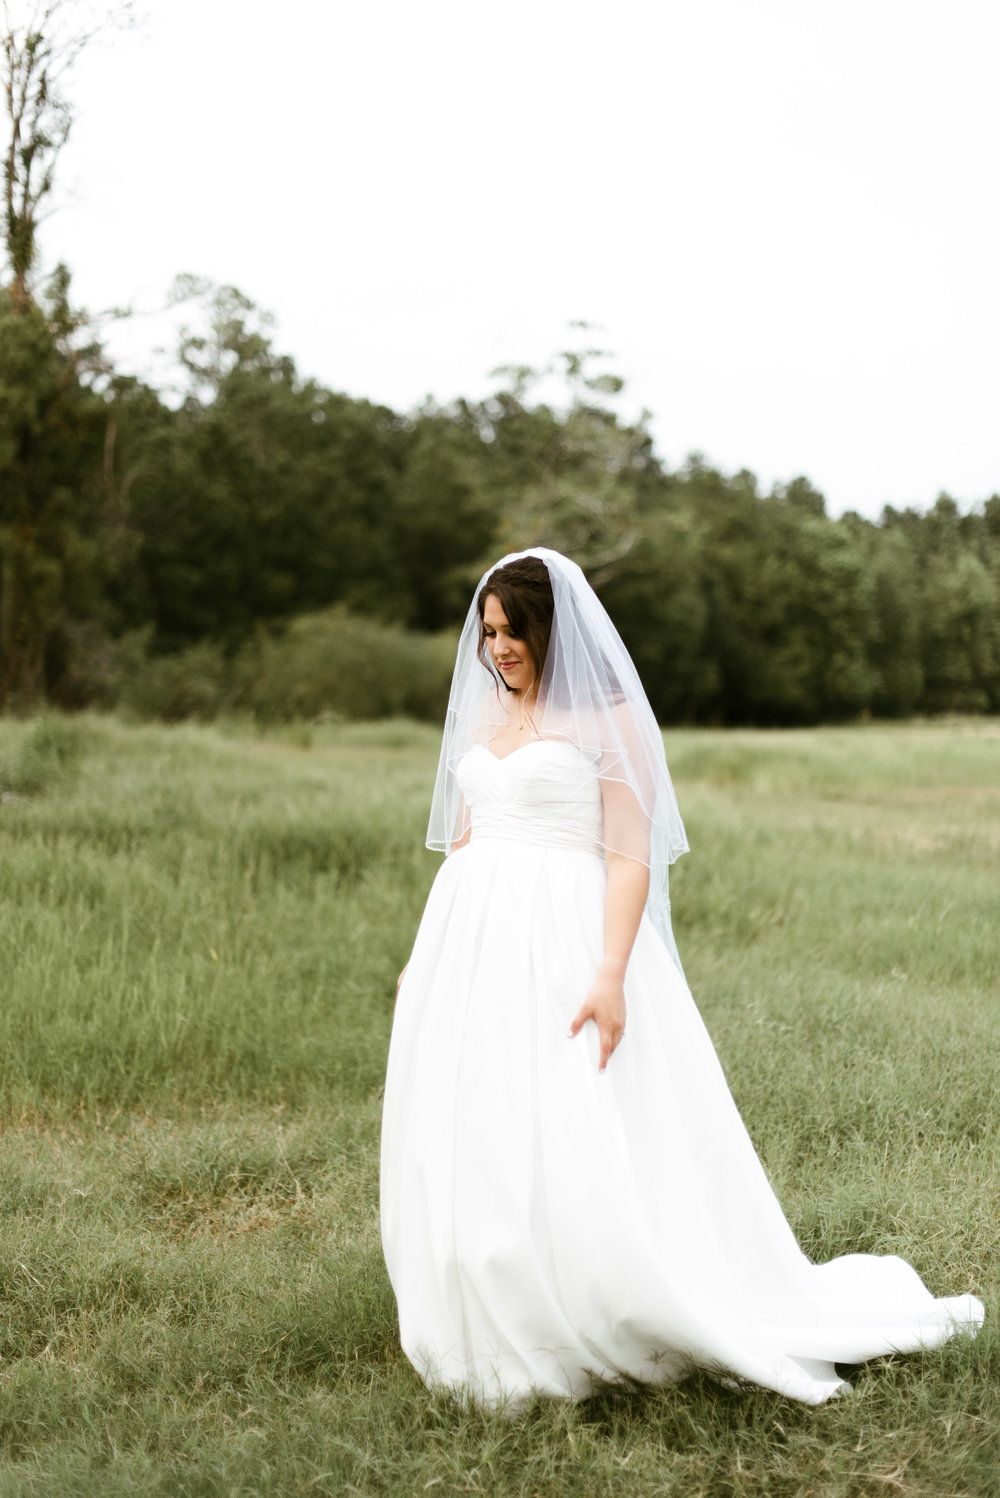 Atascocita Bridal Session | Natural Light Houston Photographer | www.jordanmitchellphotography.com